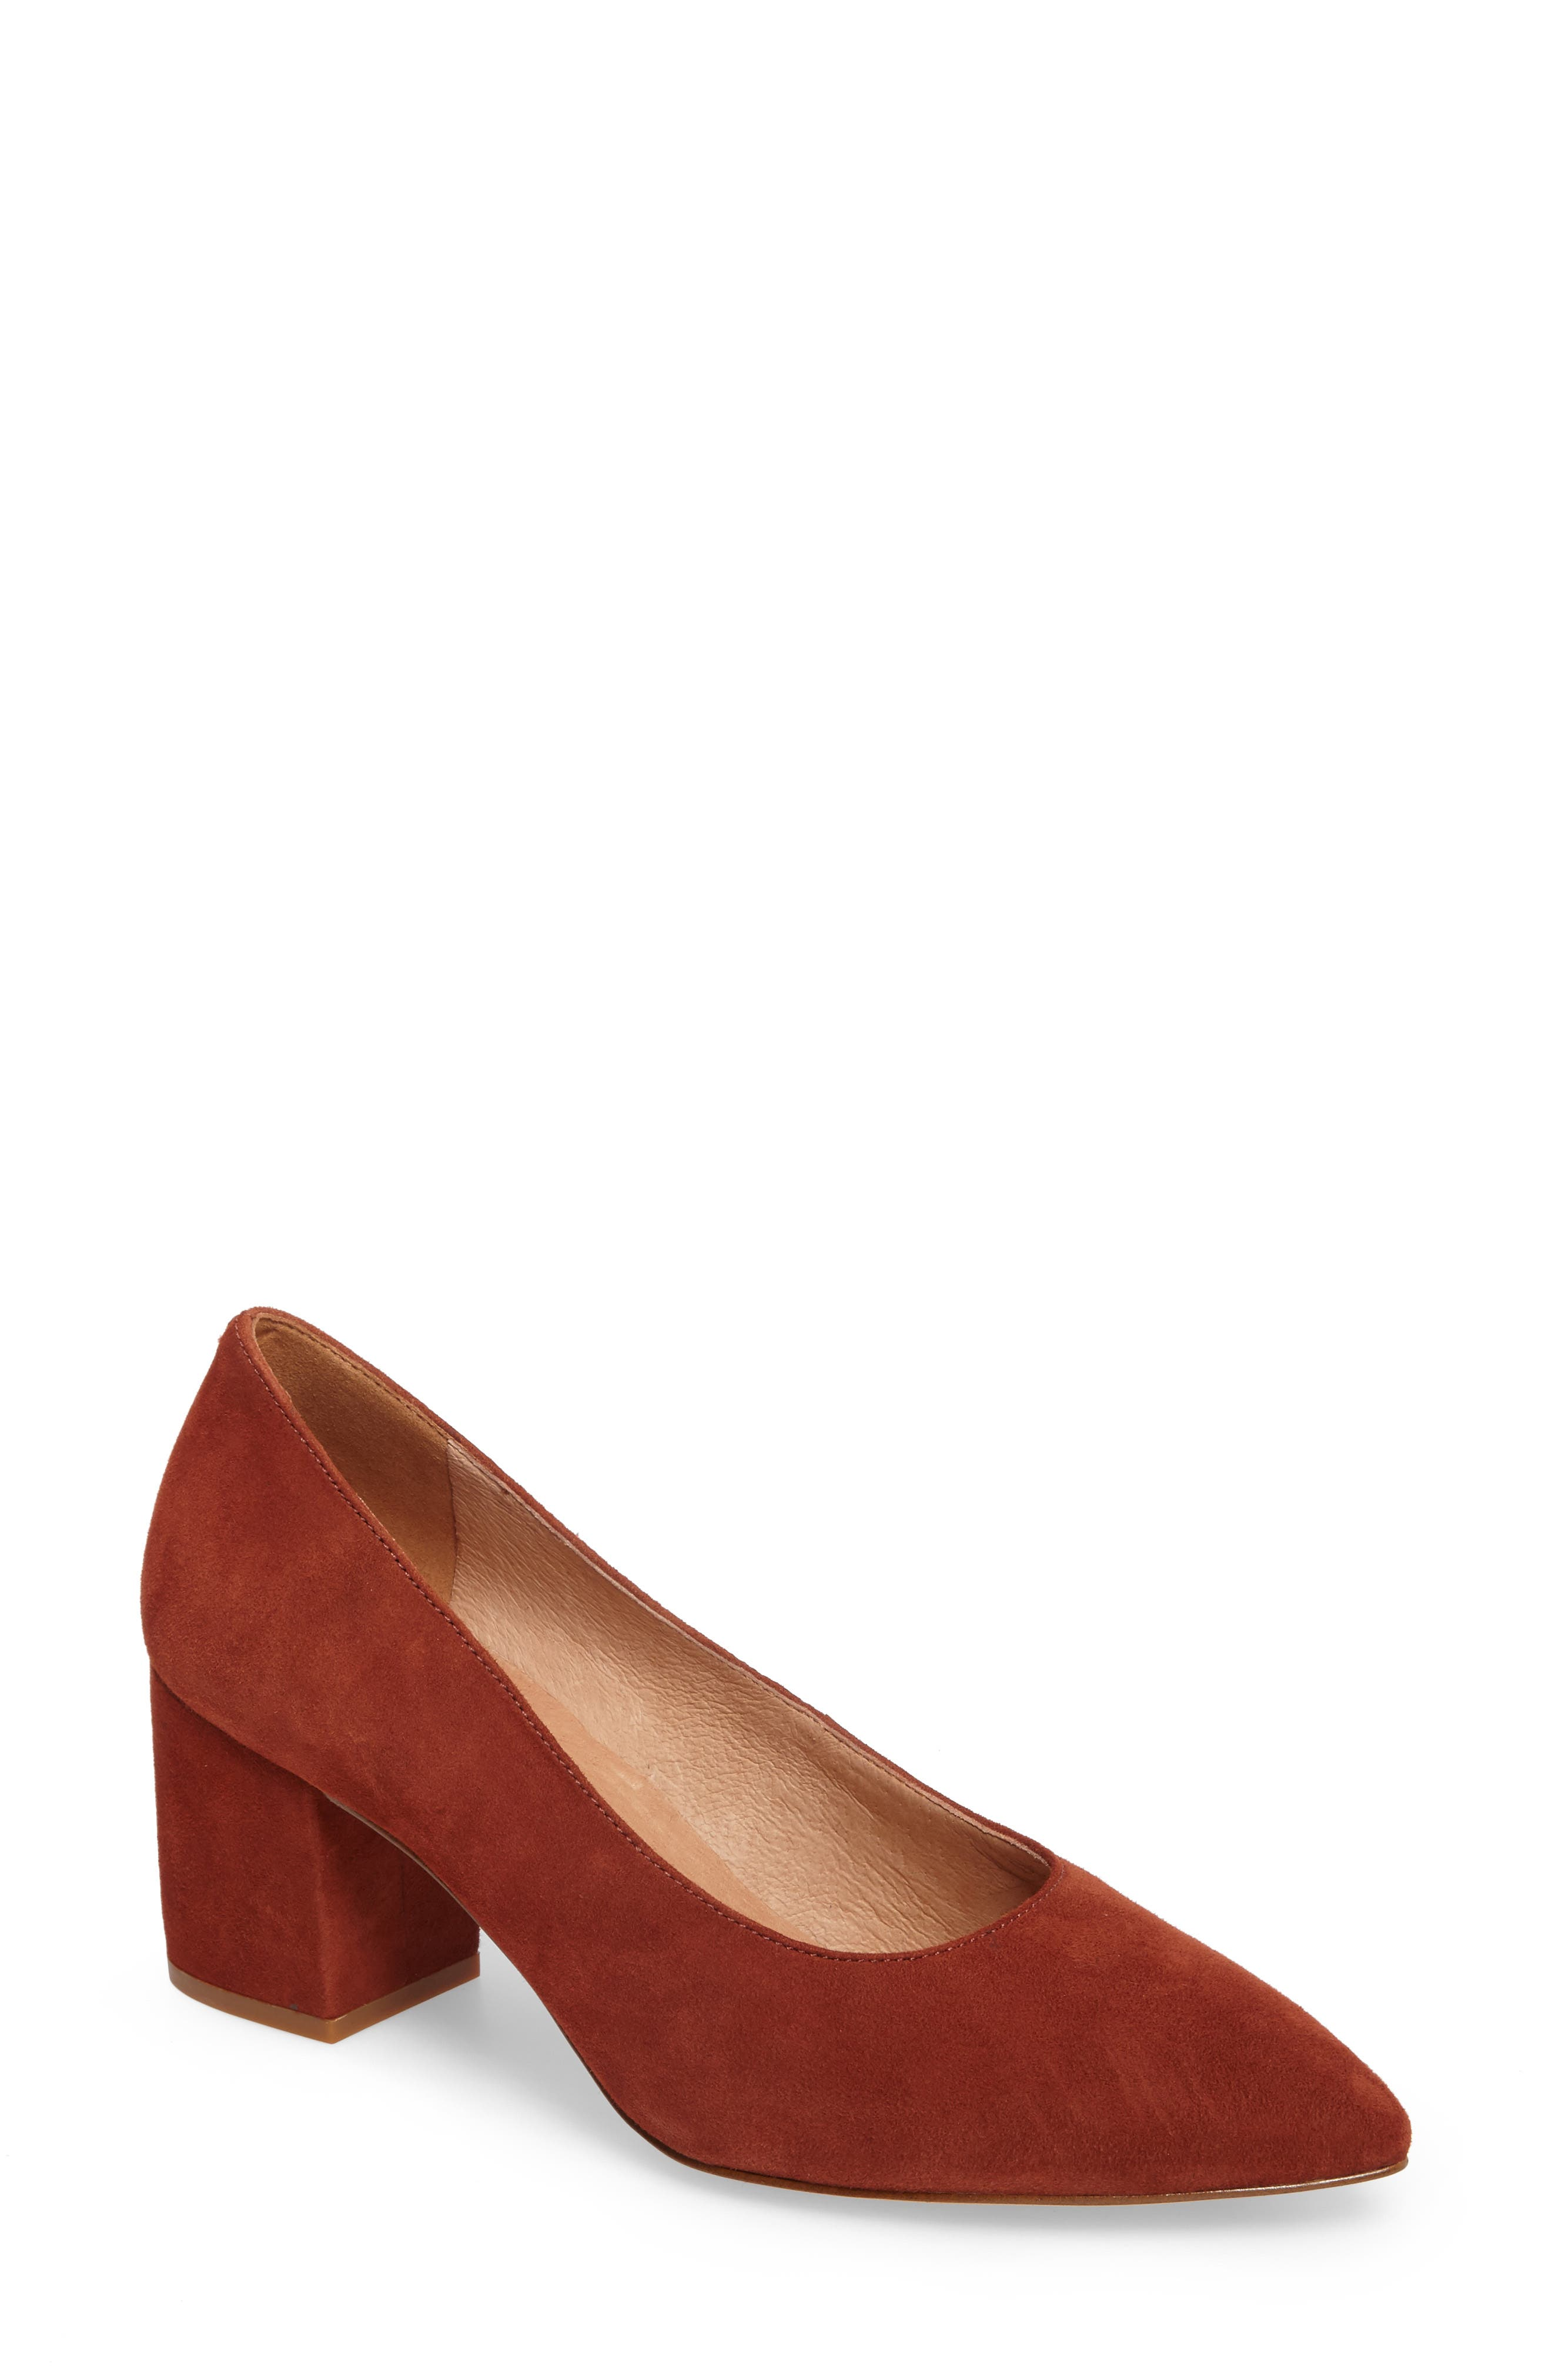 Rivka Pointy Toe Pump,                         Main,                         color, Vintage Redwood Suede